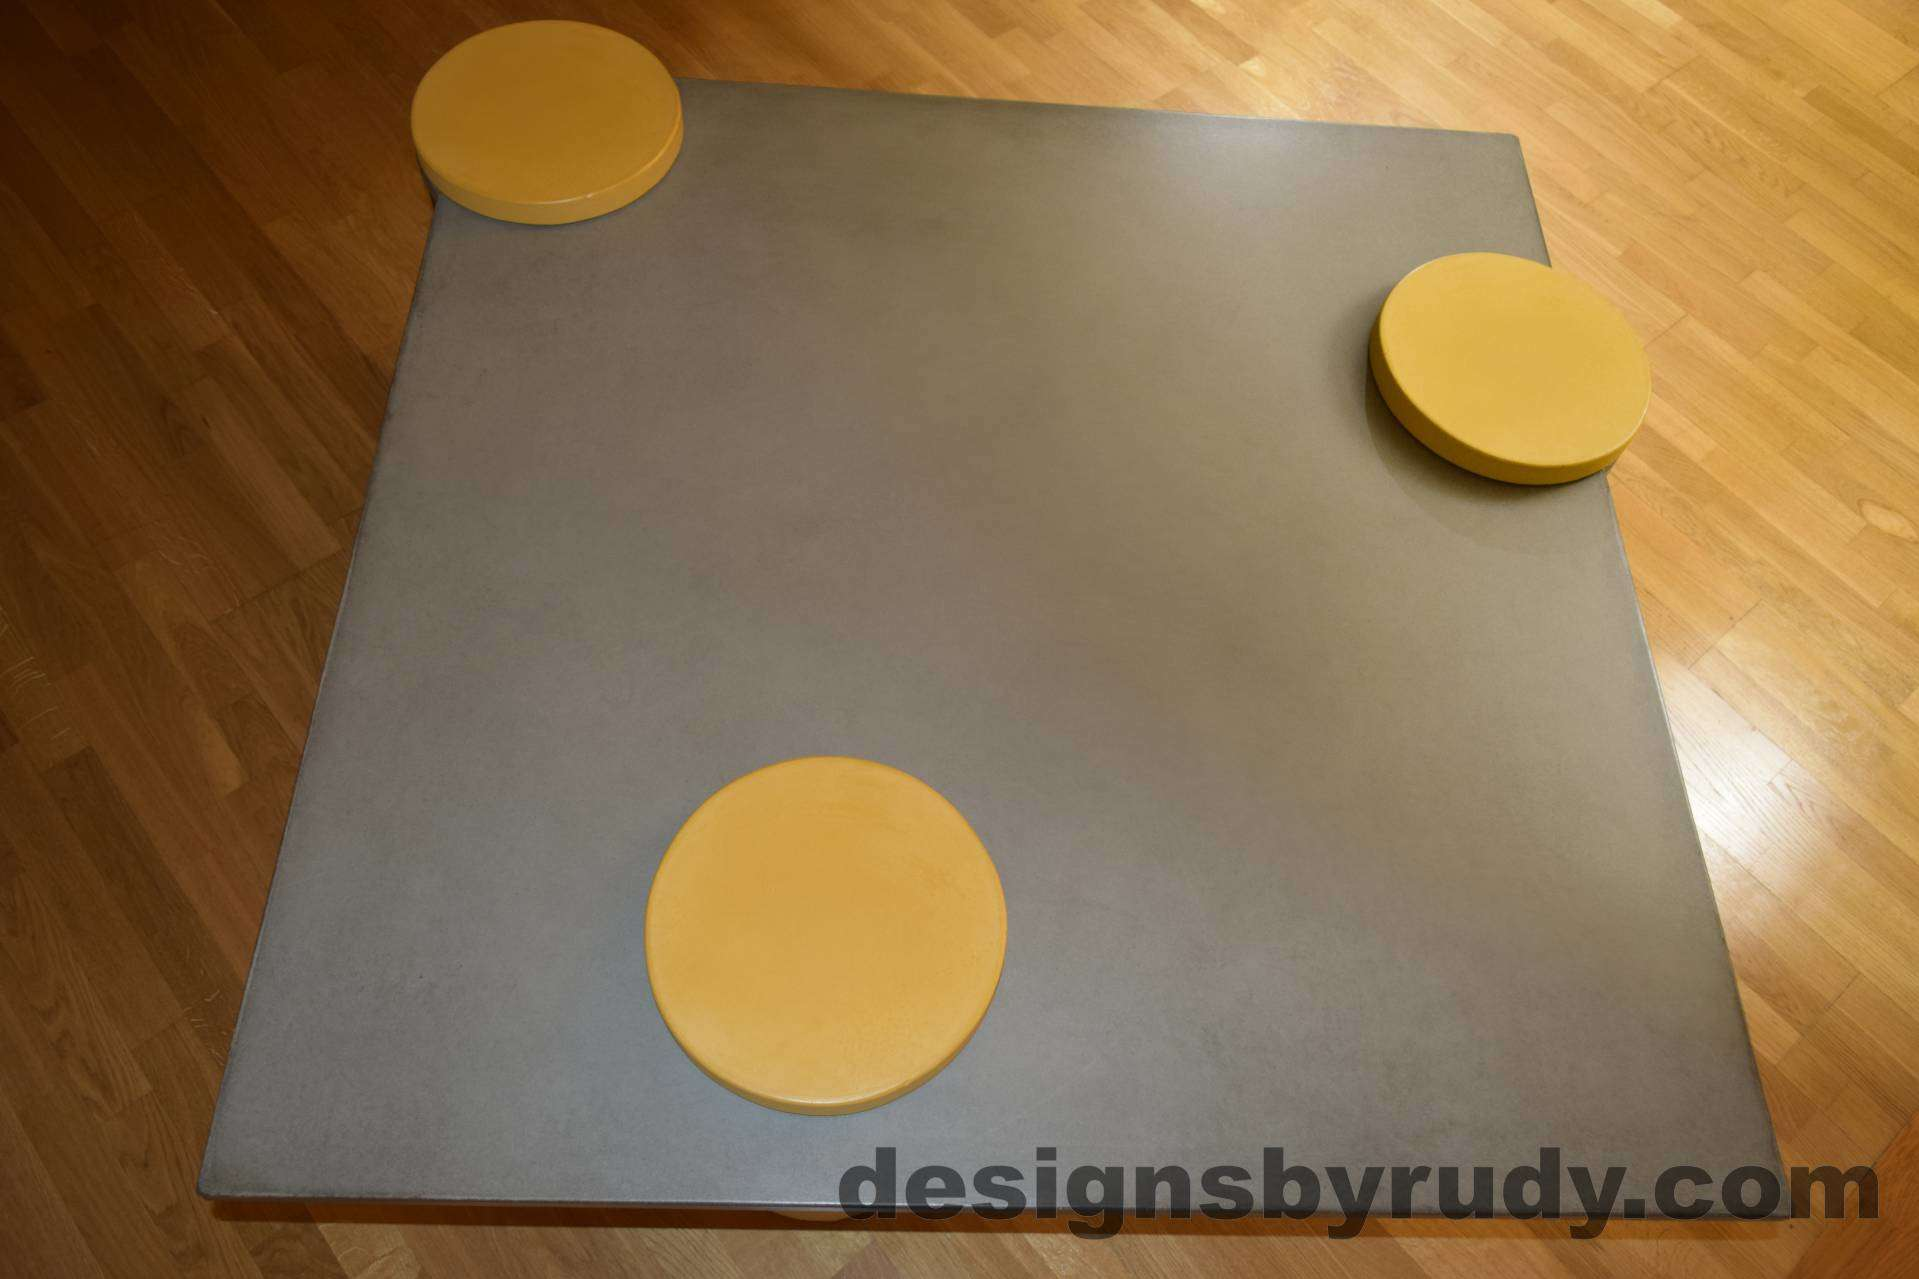 5L Gray Concrete Coffee Table Top with Yellow Caps, Designs by Rudy